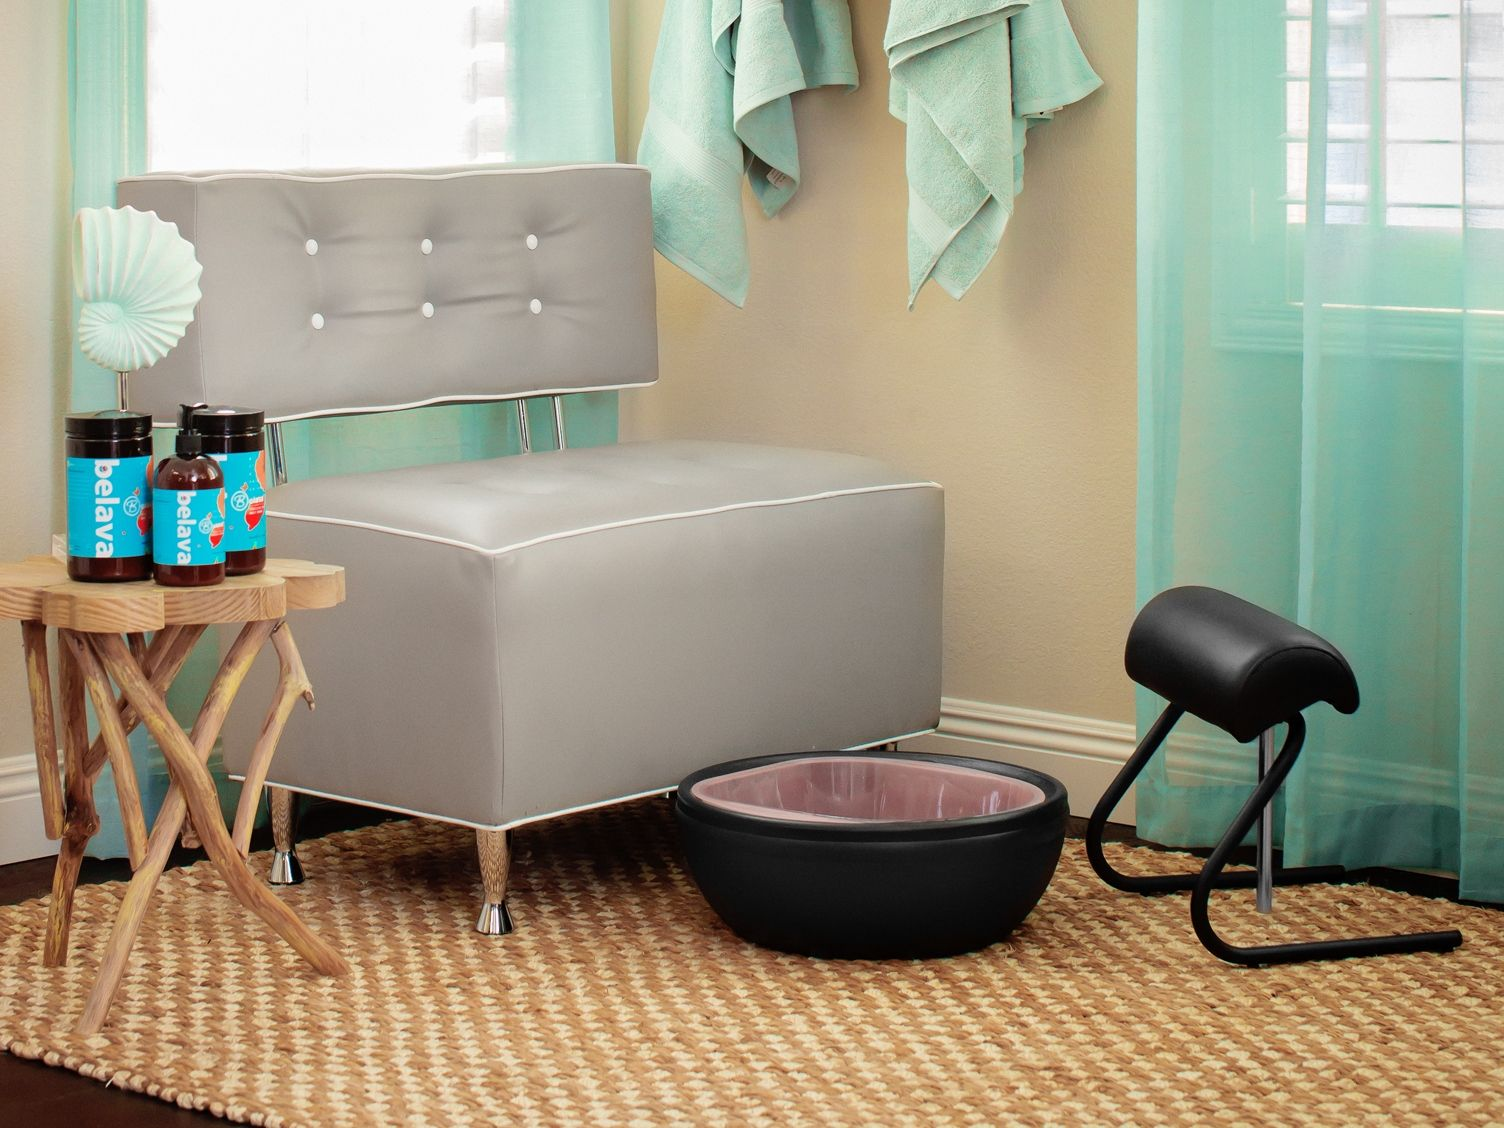 used no plumbing pedicure chair wheel motors the trio foot spa and freestanding footrest turn our lounge